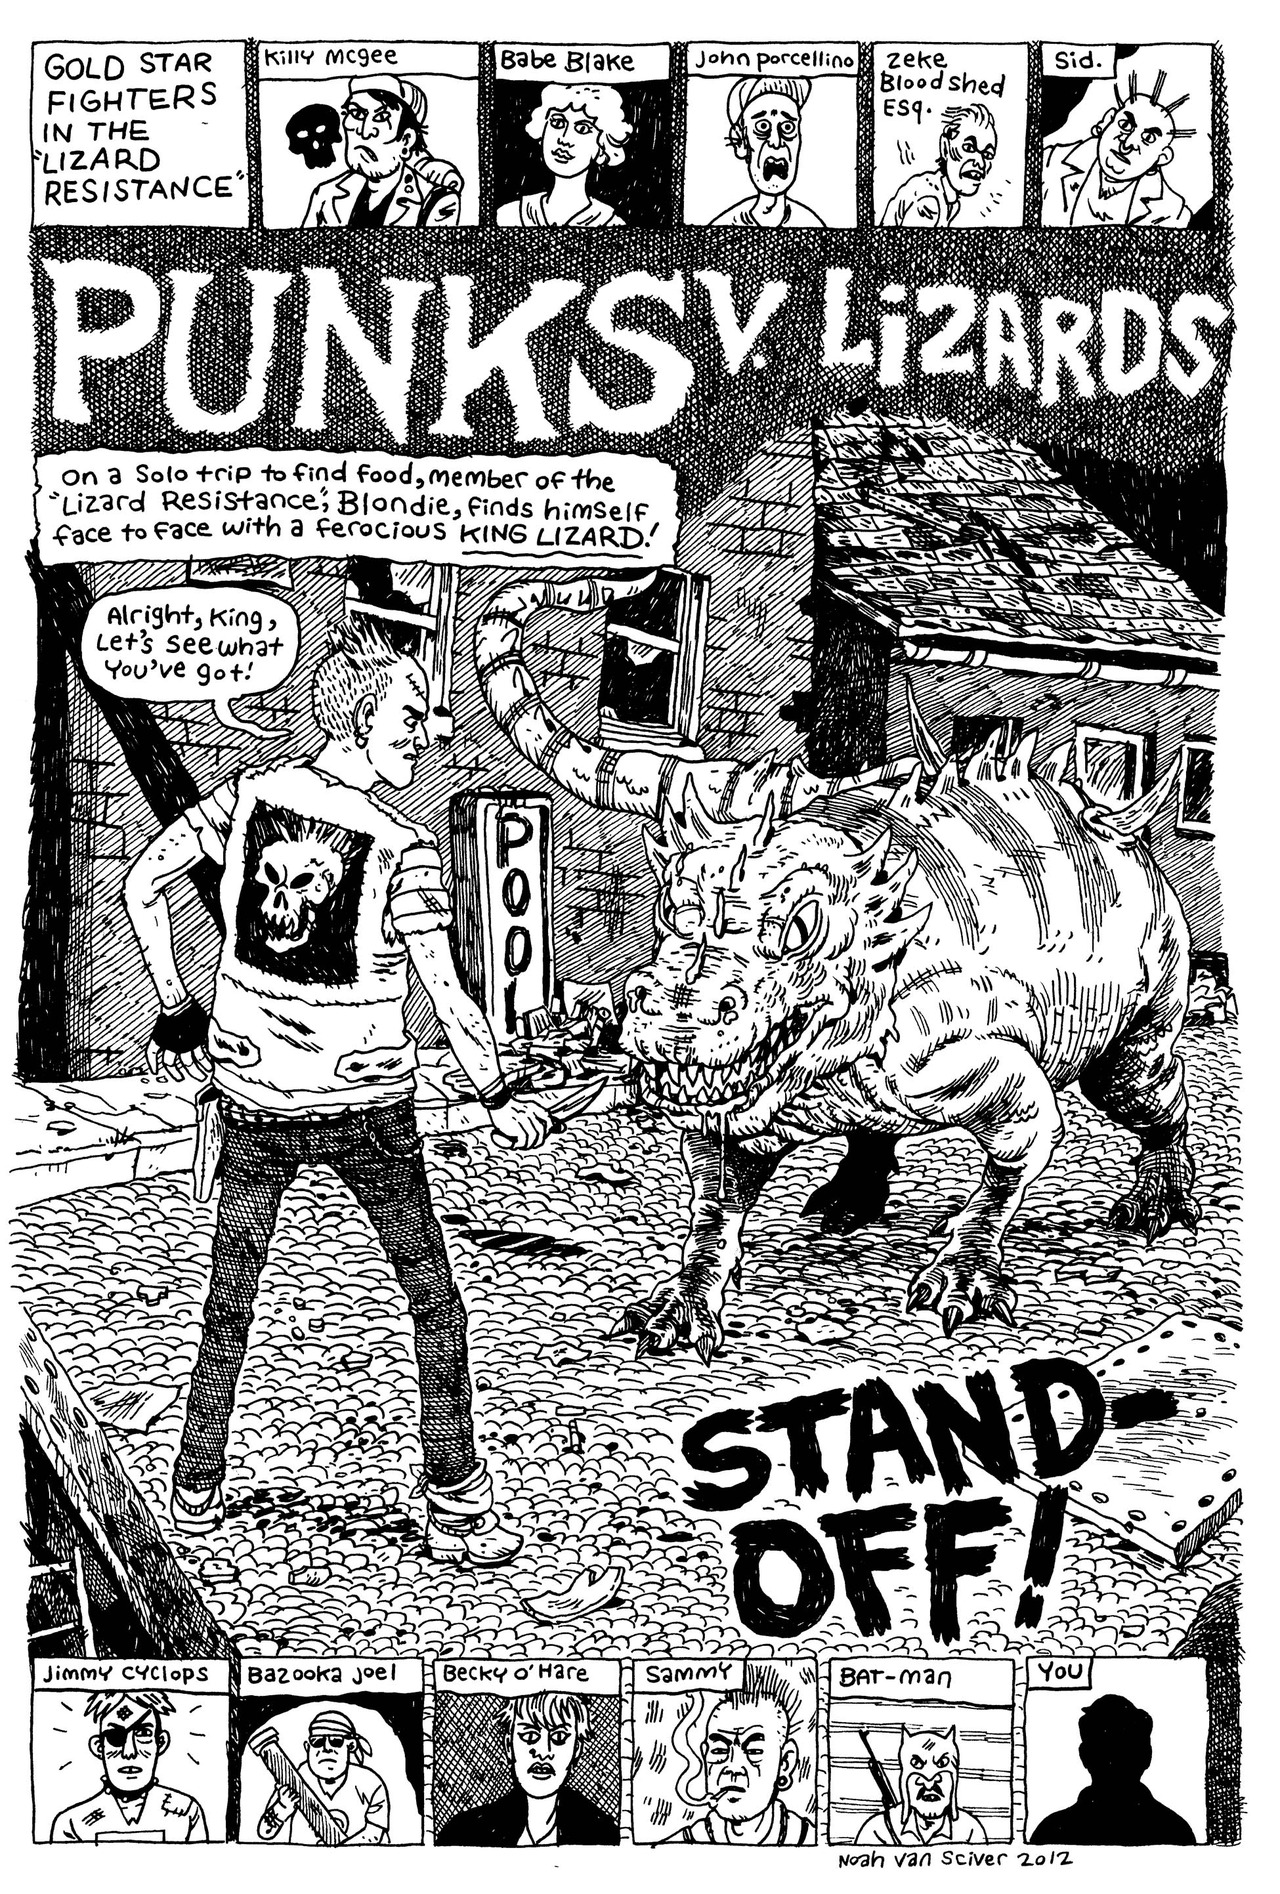 noahvansciver :     Punks v. Lizards from the upcoming Blammo #8.